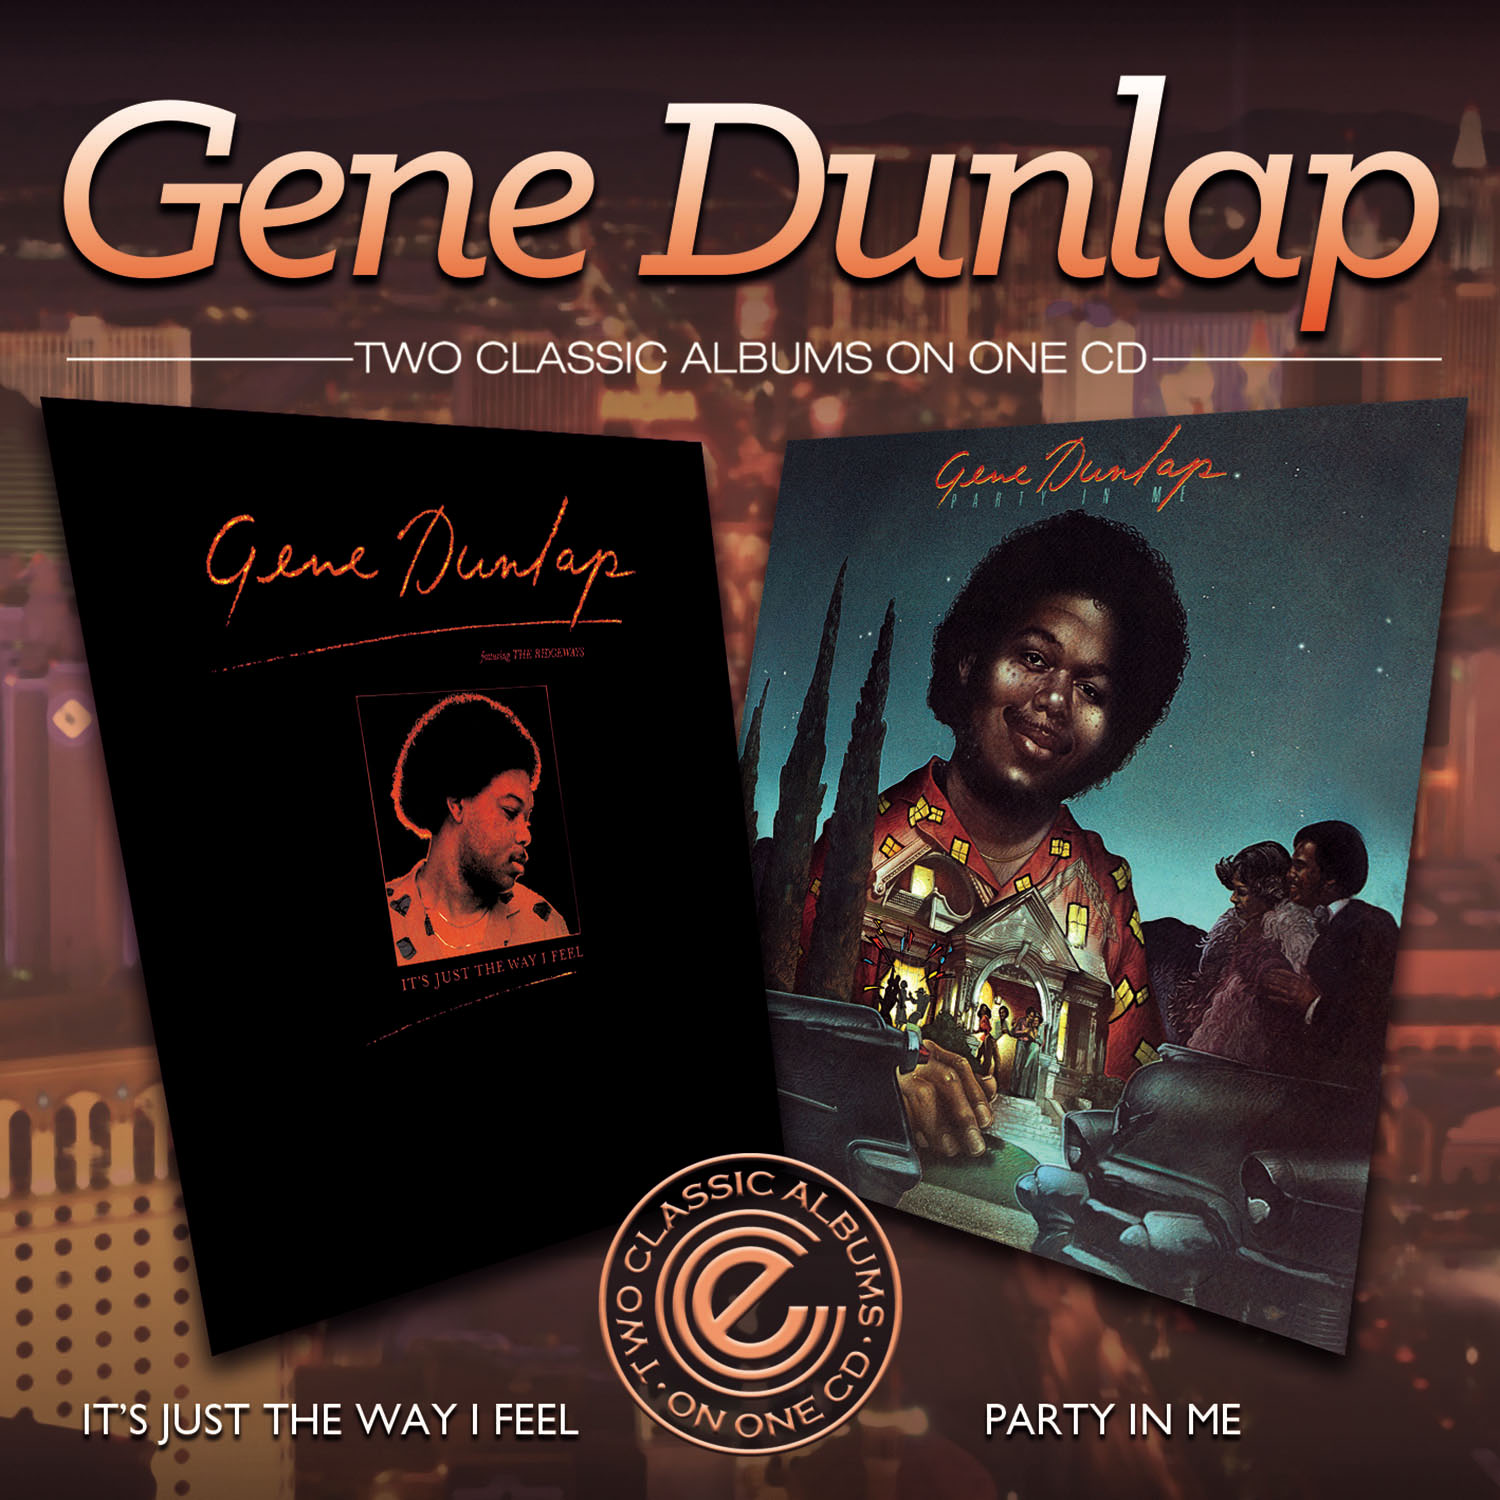 Gene Dunlap/IT'S JUST THE WAY & PARTY CD